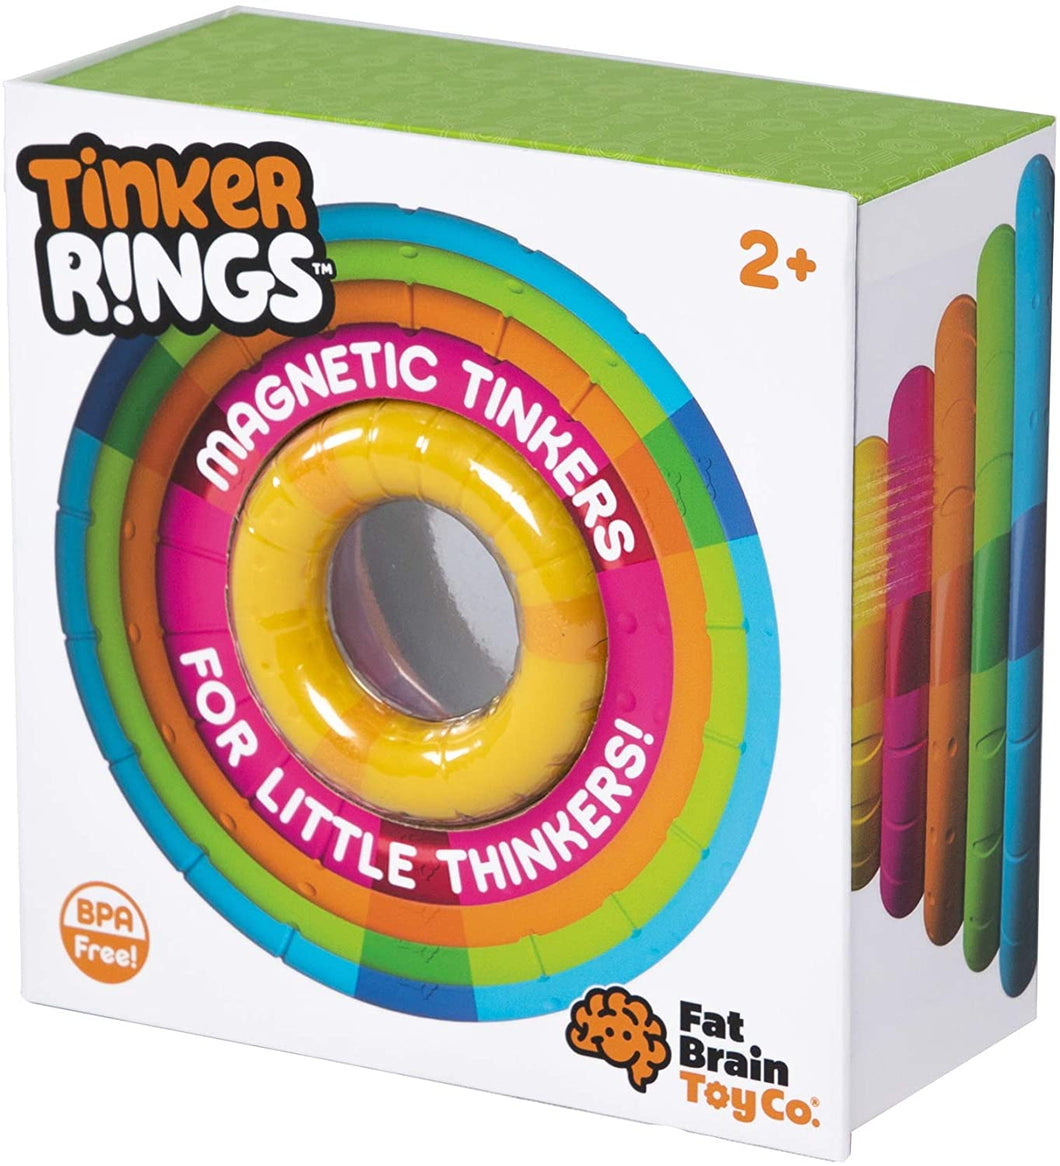 Tinker Rings - Fat Brain Toys